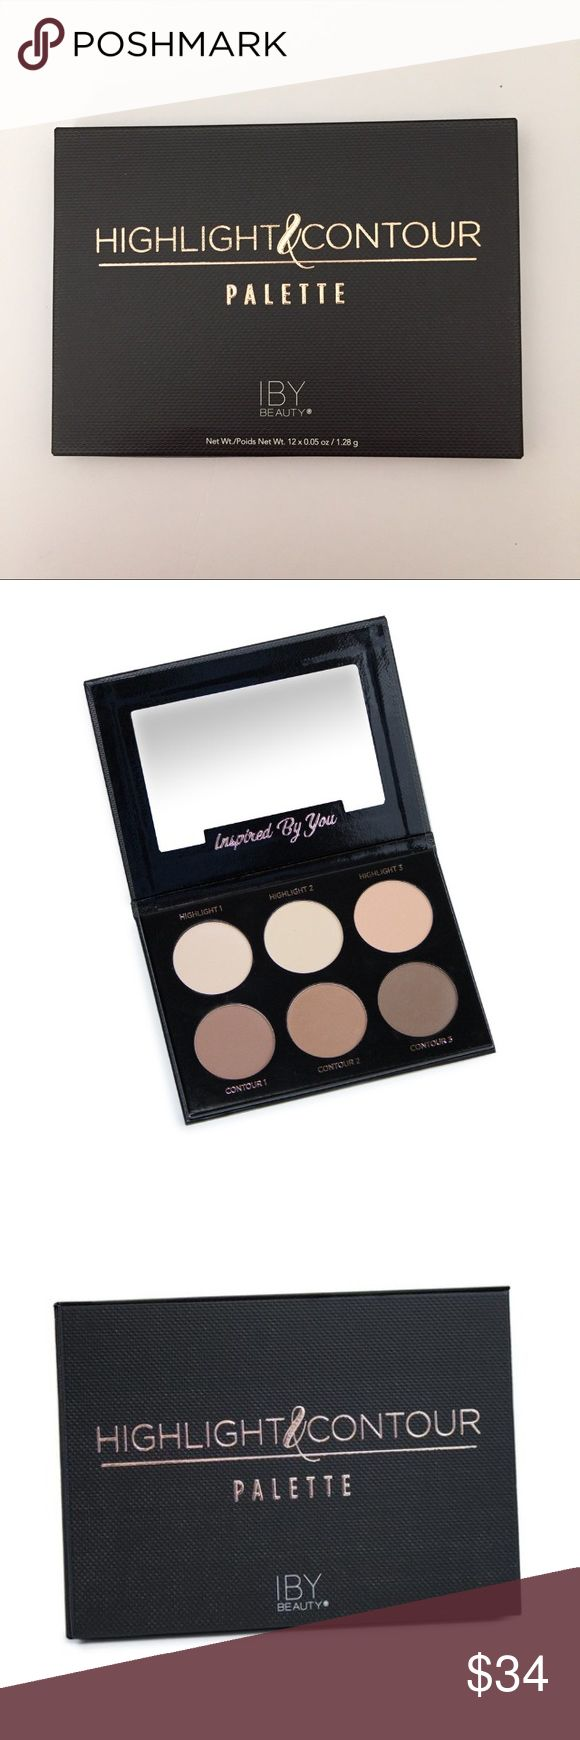 Highlight & Contour Palette by IBY Beauty Sculpt, define, and illuminate your features with the Highlight and Contour Palette. Chic and portable, this pro-approved kit comes in 6 versatile shades and includes an easy-to-follow makeup guide to achieve your most natural contoured look.  Not opened, new in box. IBY Beauty Makeup